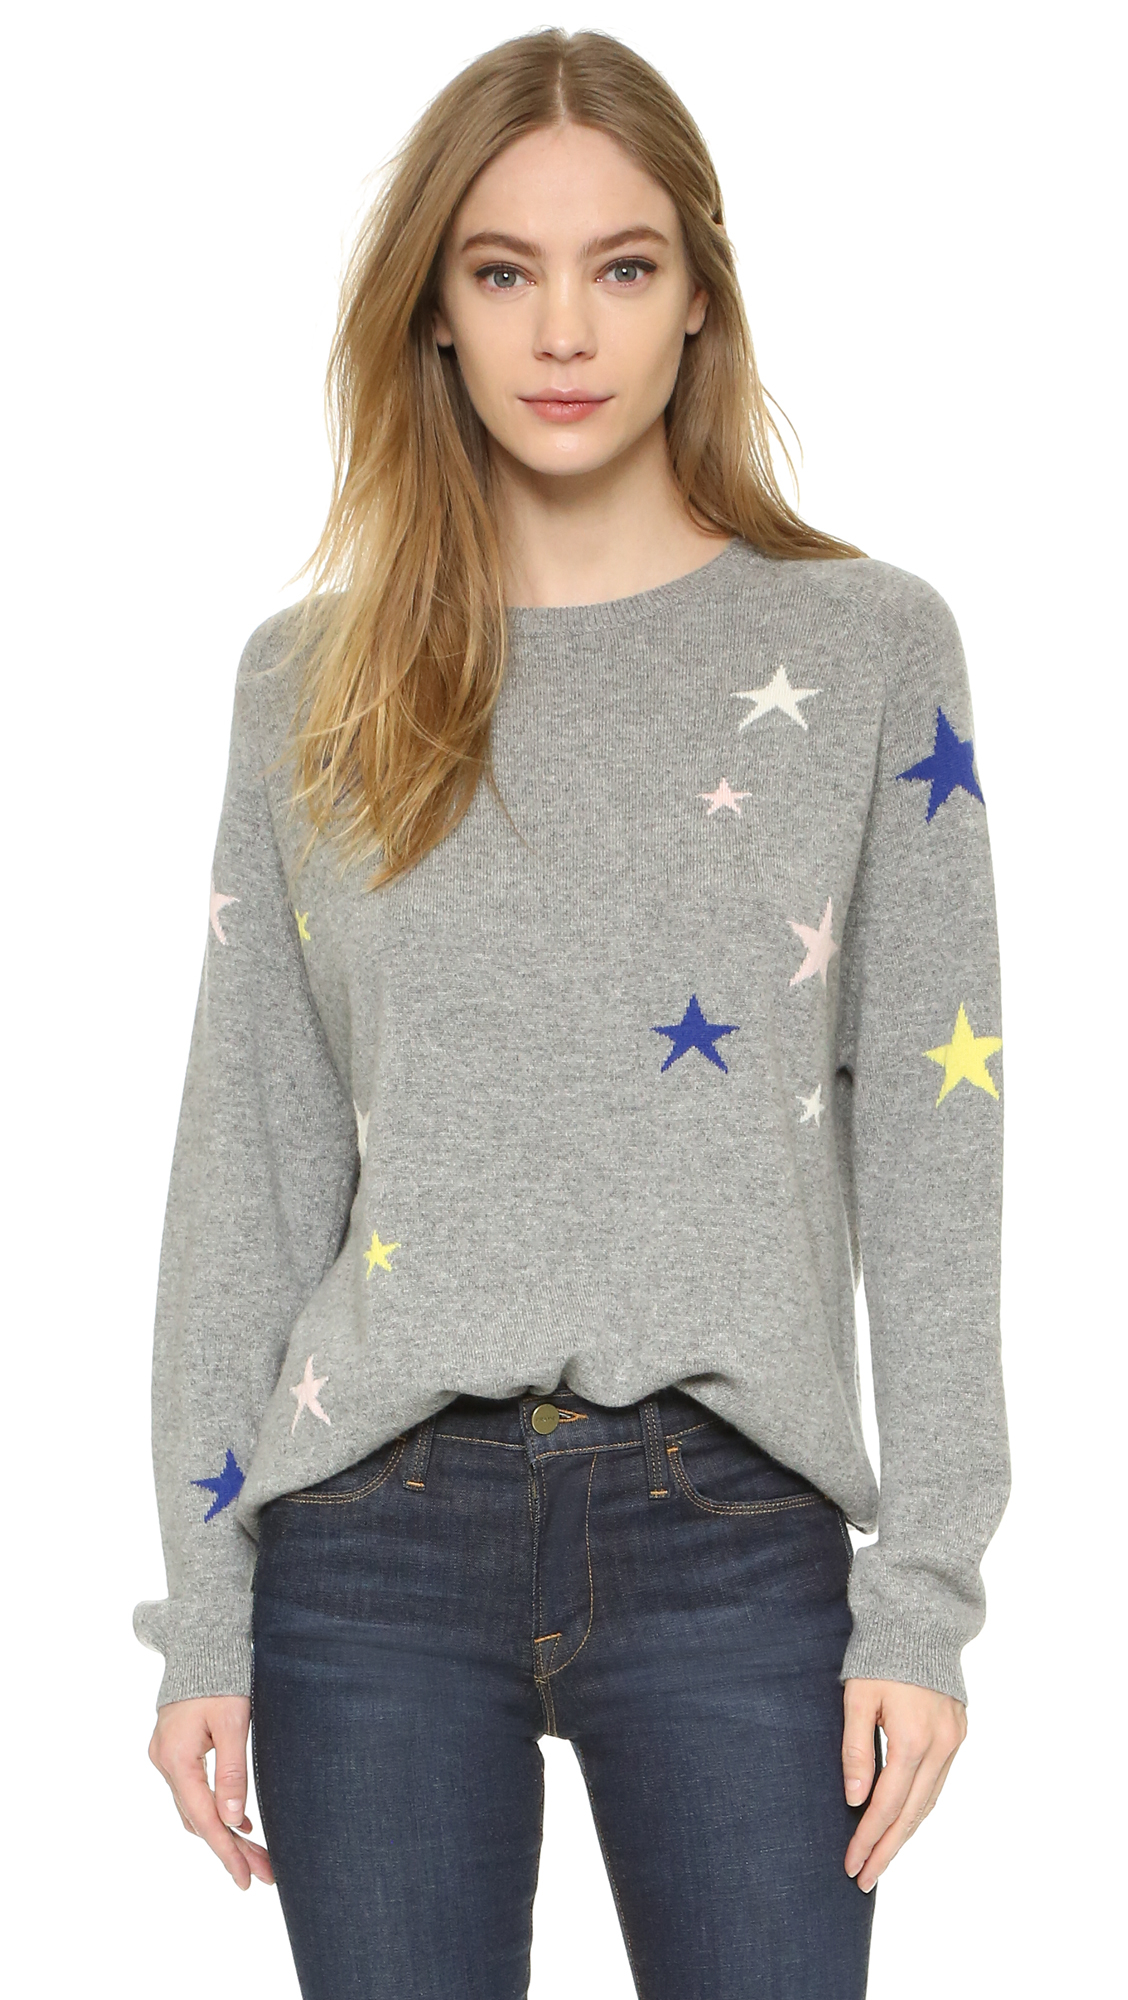 a5bc0dc3dd Lyst - Chinti   Parker Slouchy Star Cashmere Sweater in Gray